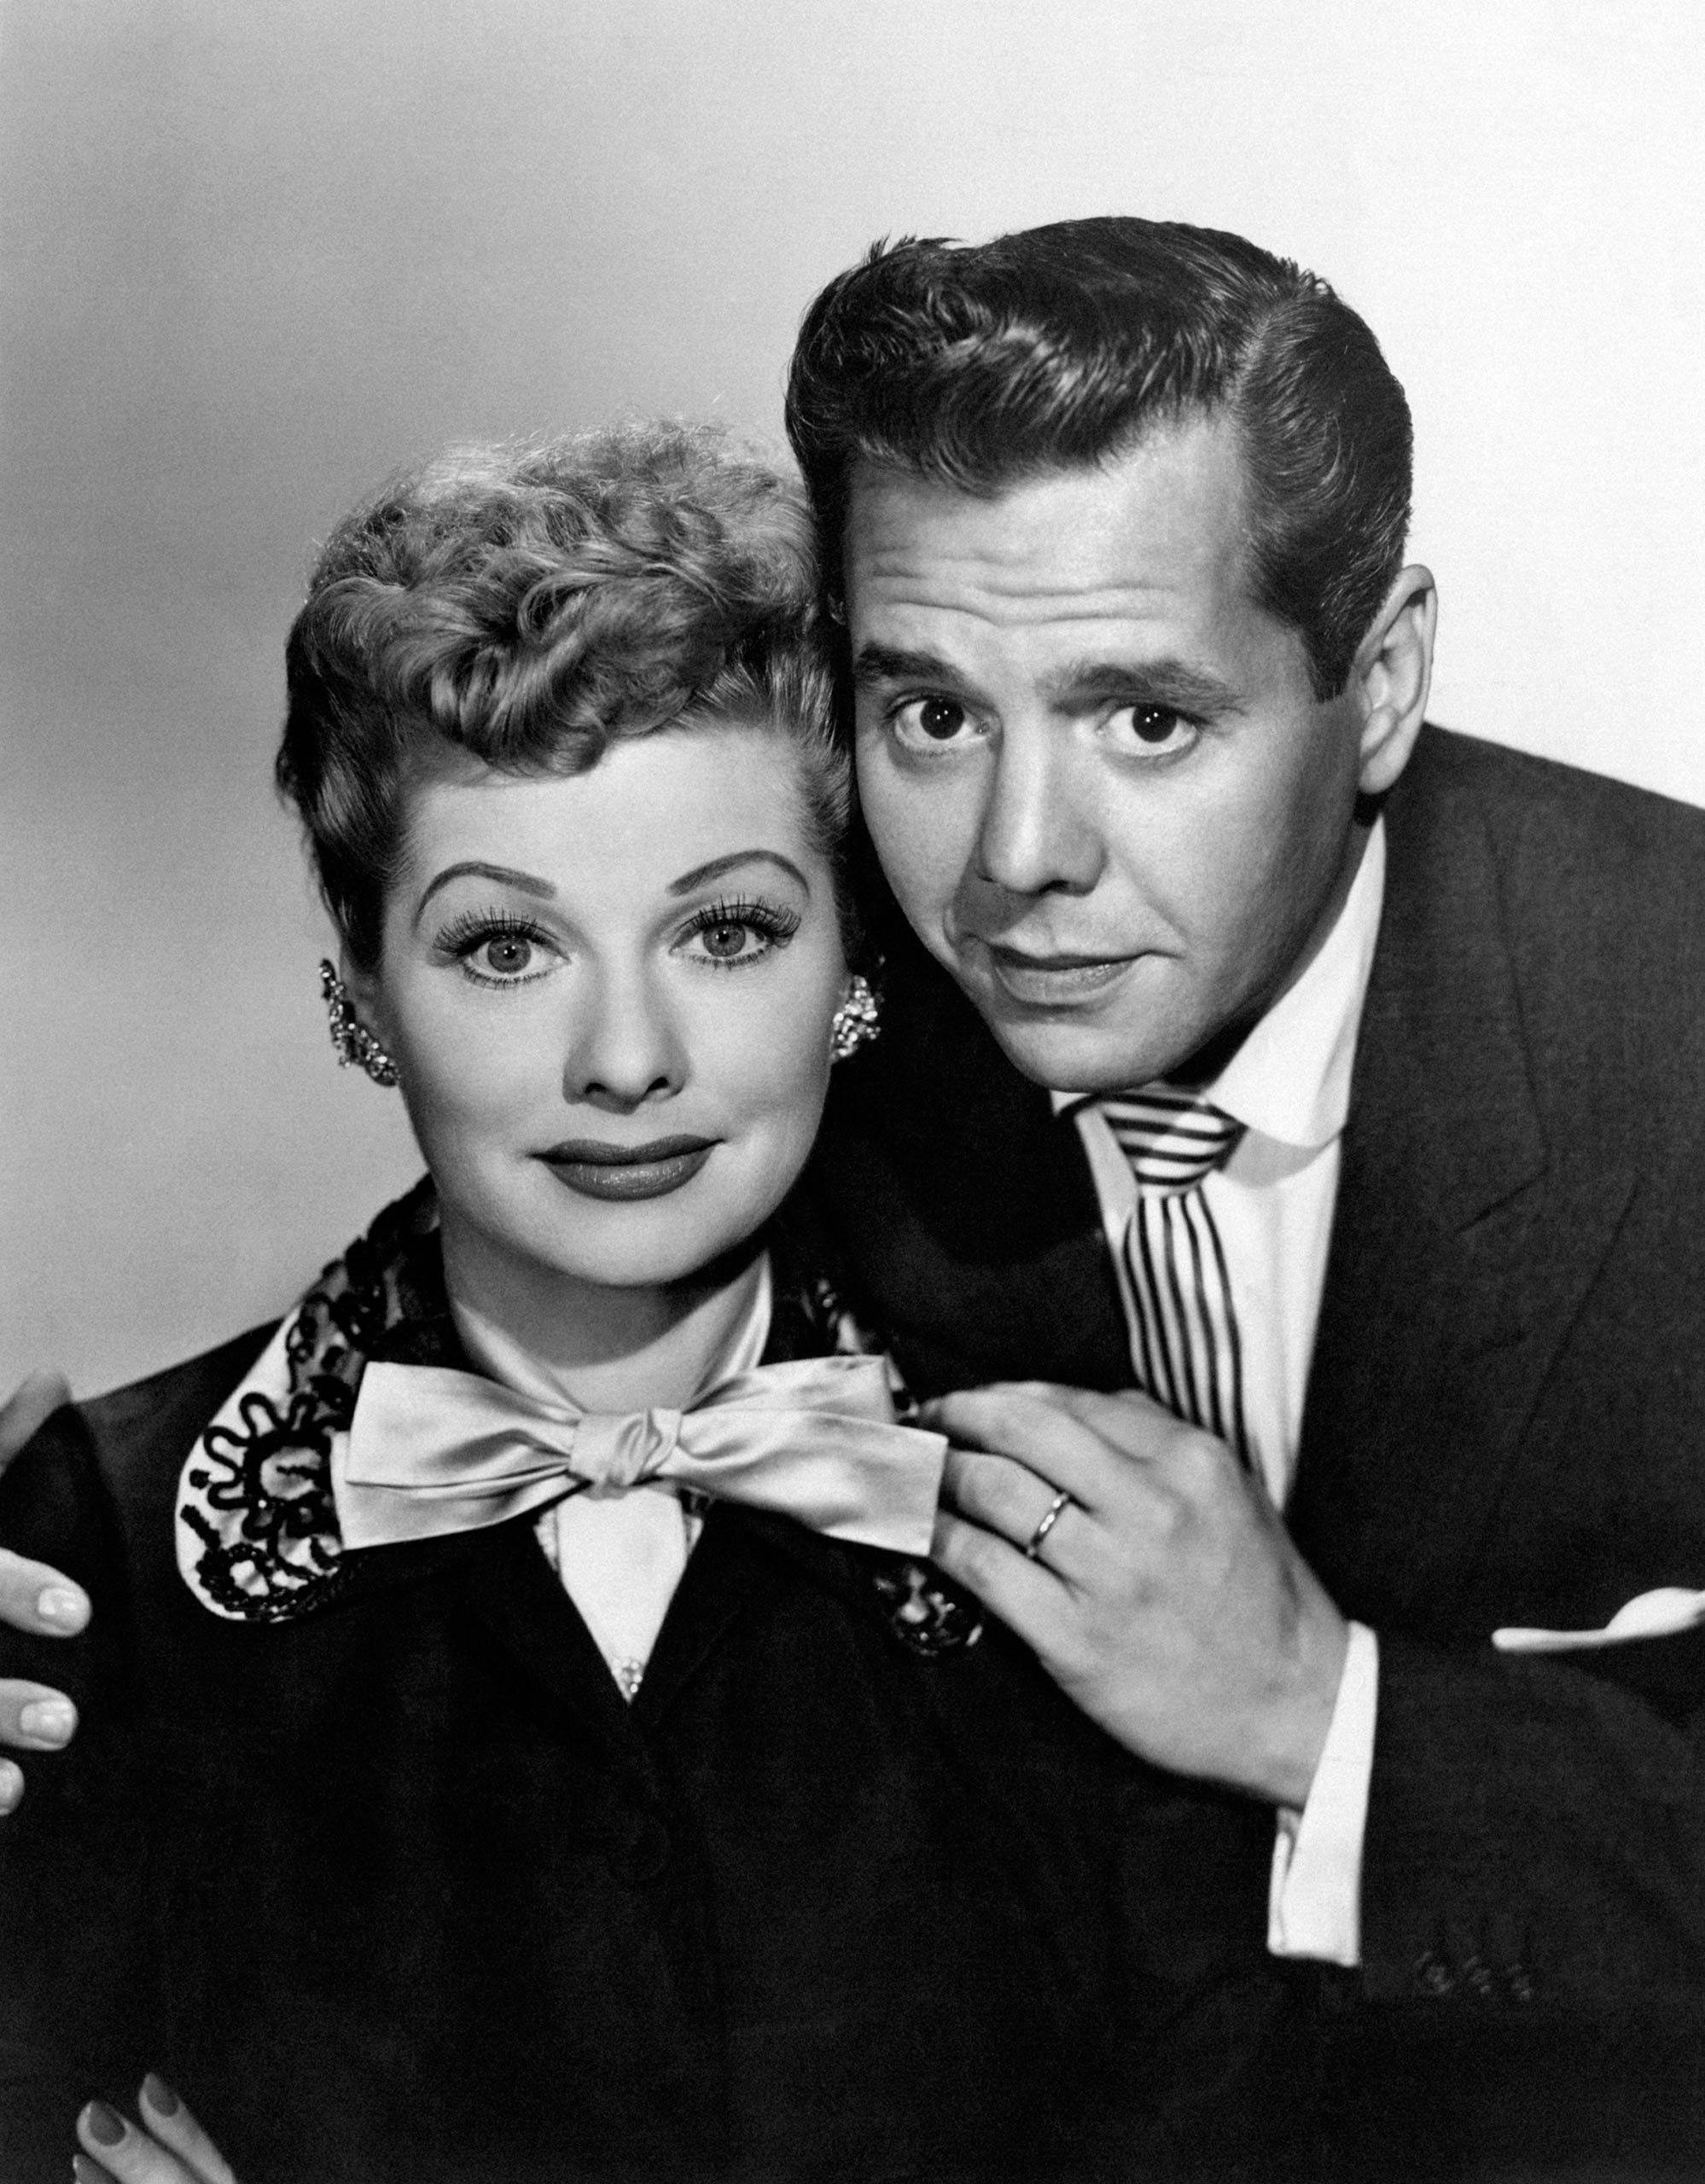 Lucille Ball and Desi Arnaz on the set of I Love Lucy